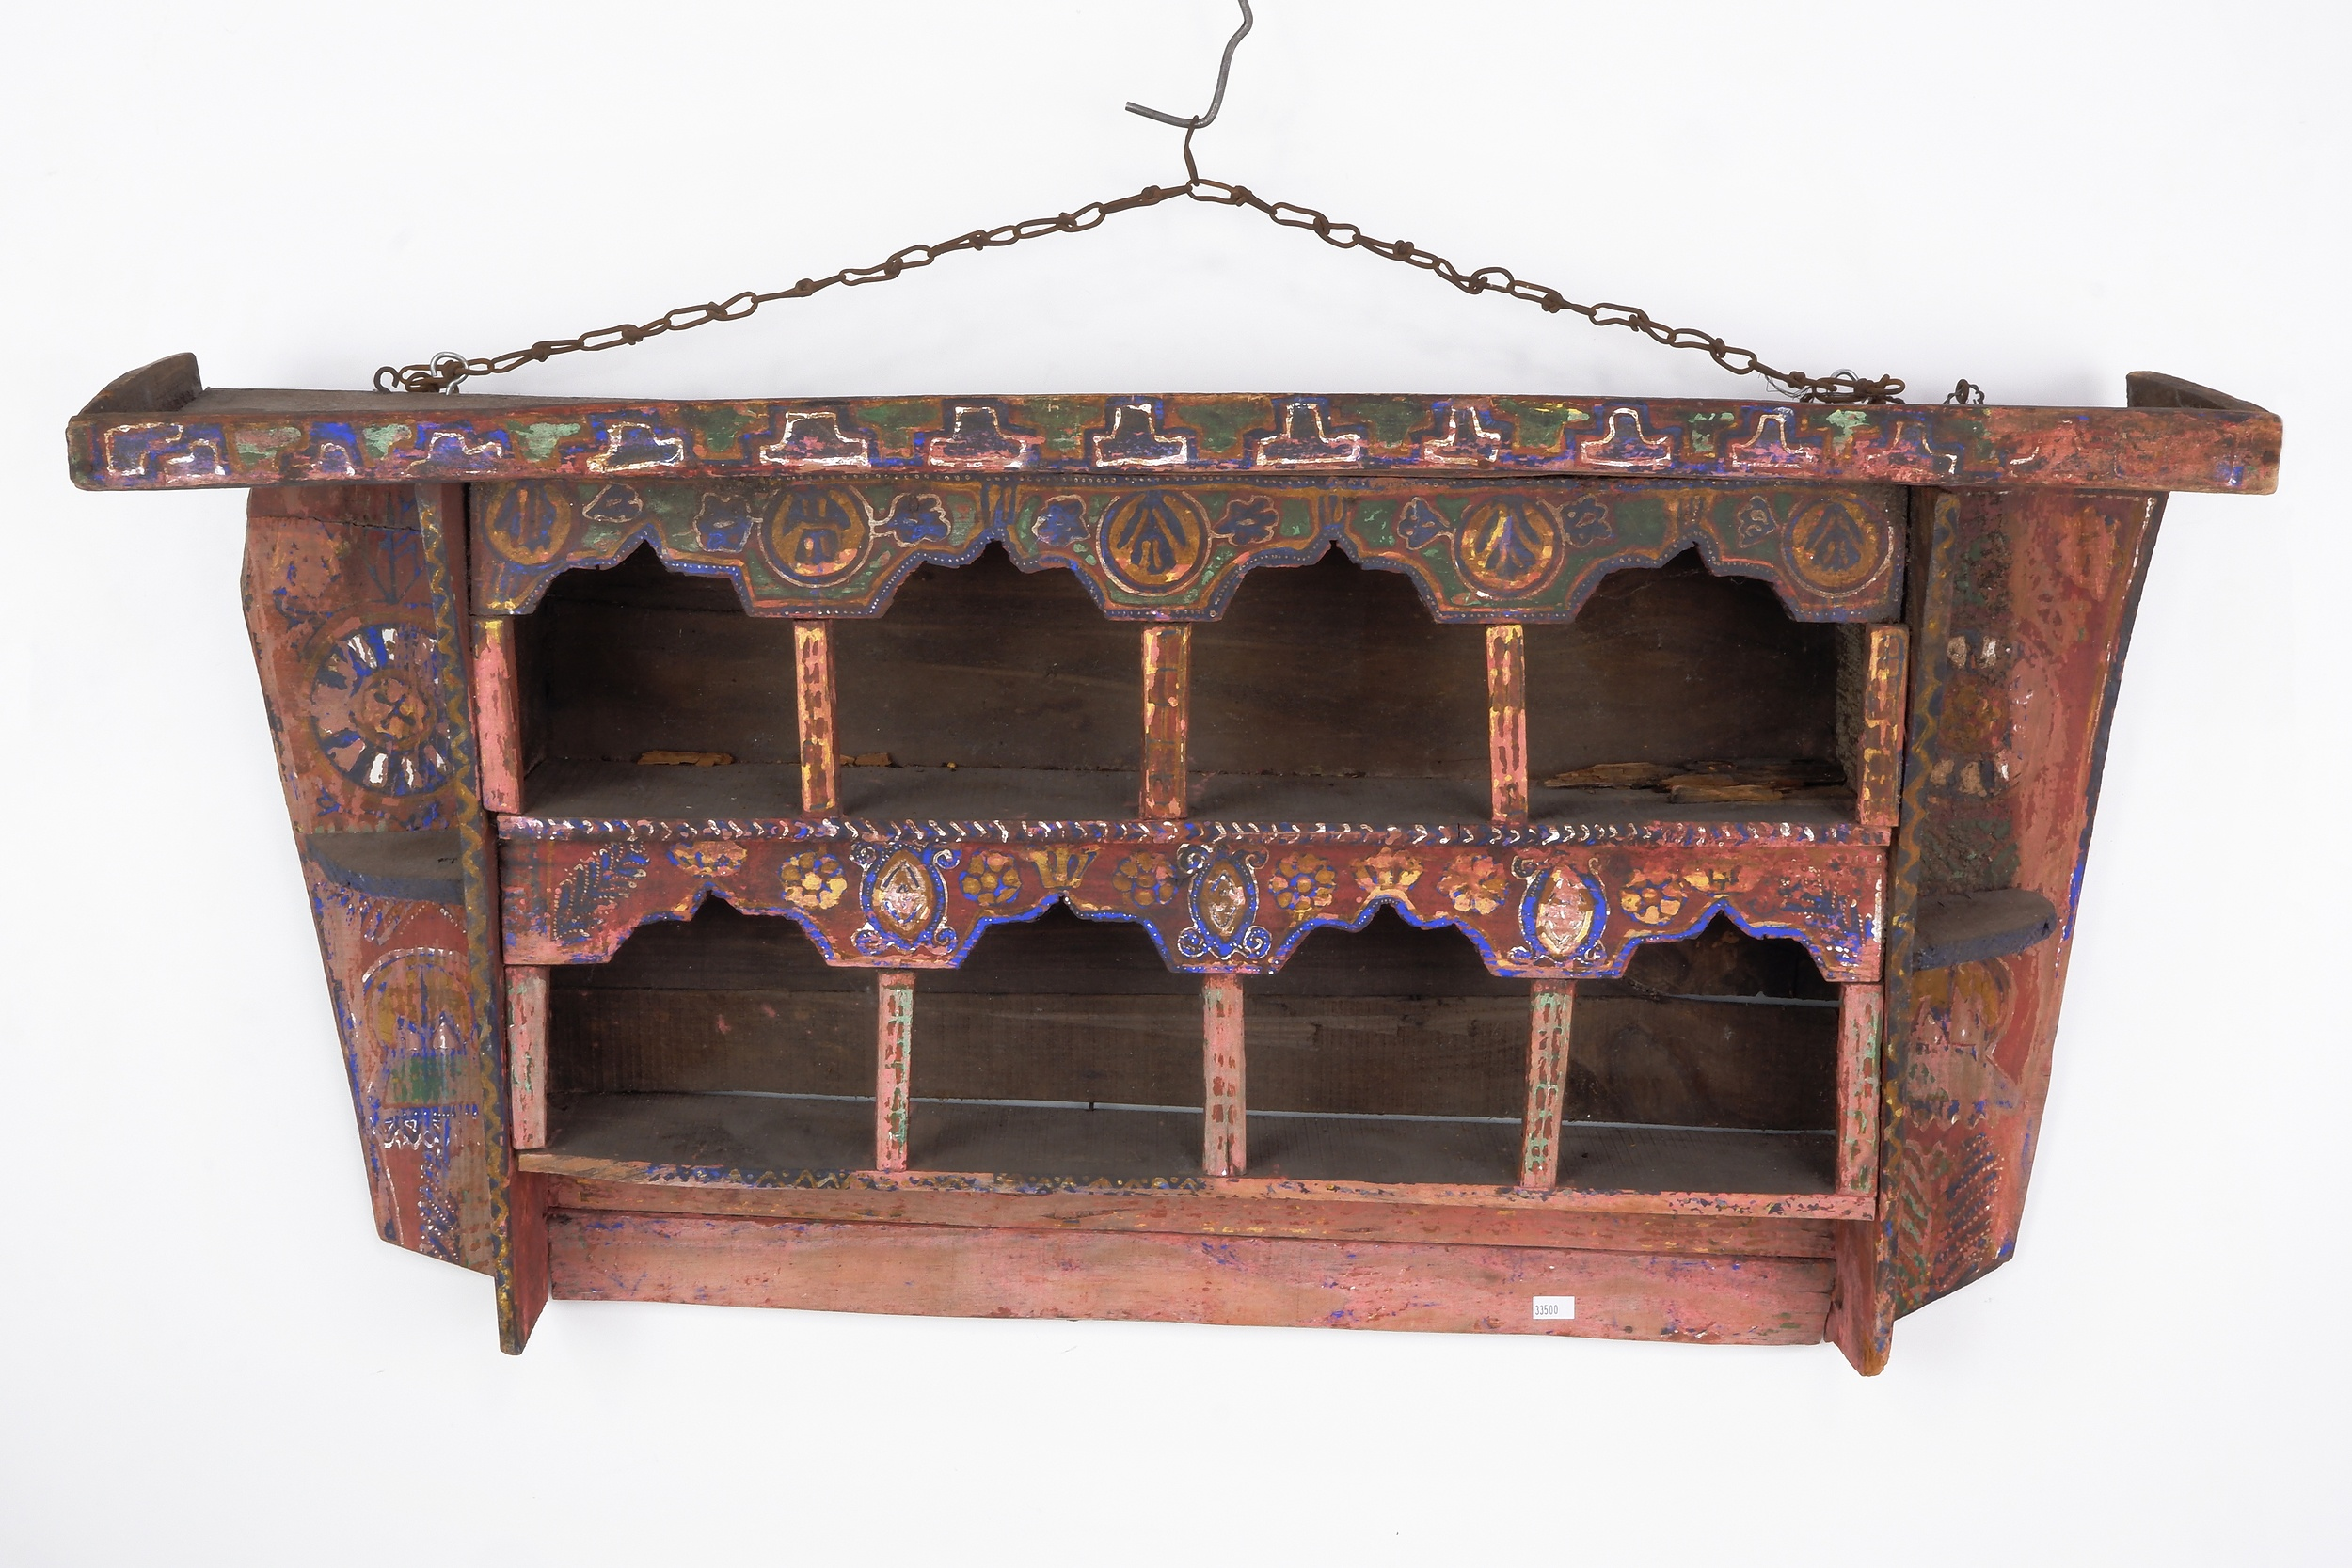 'Rare Antique Moroccan Hanging Spice Shelf with Original Hand Painted Decoration'